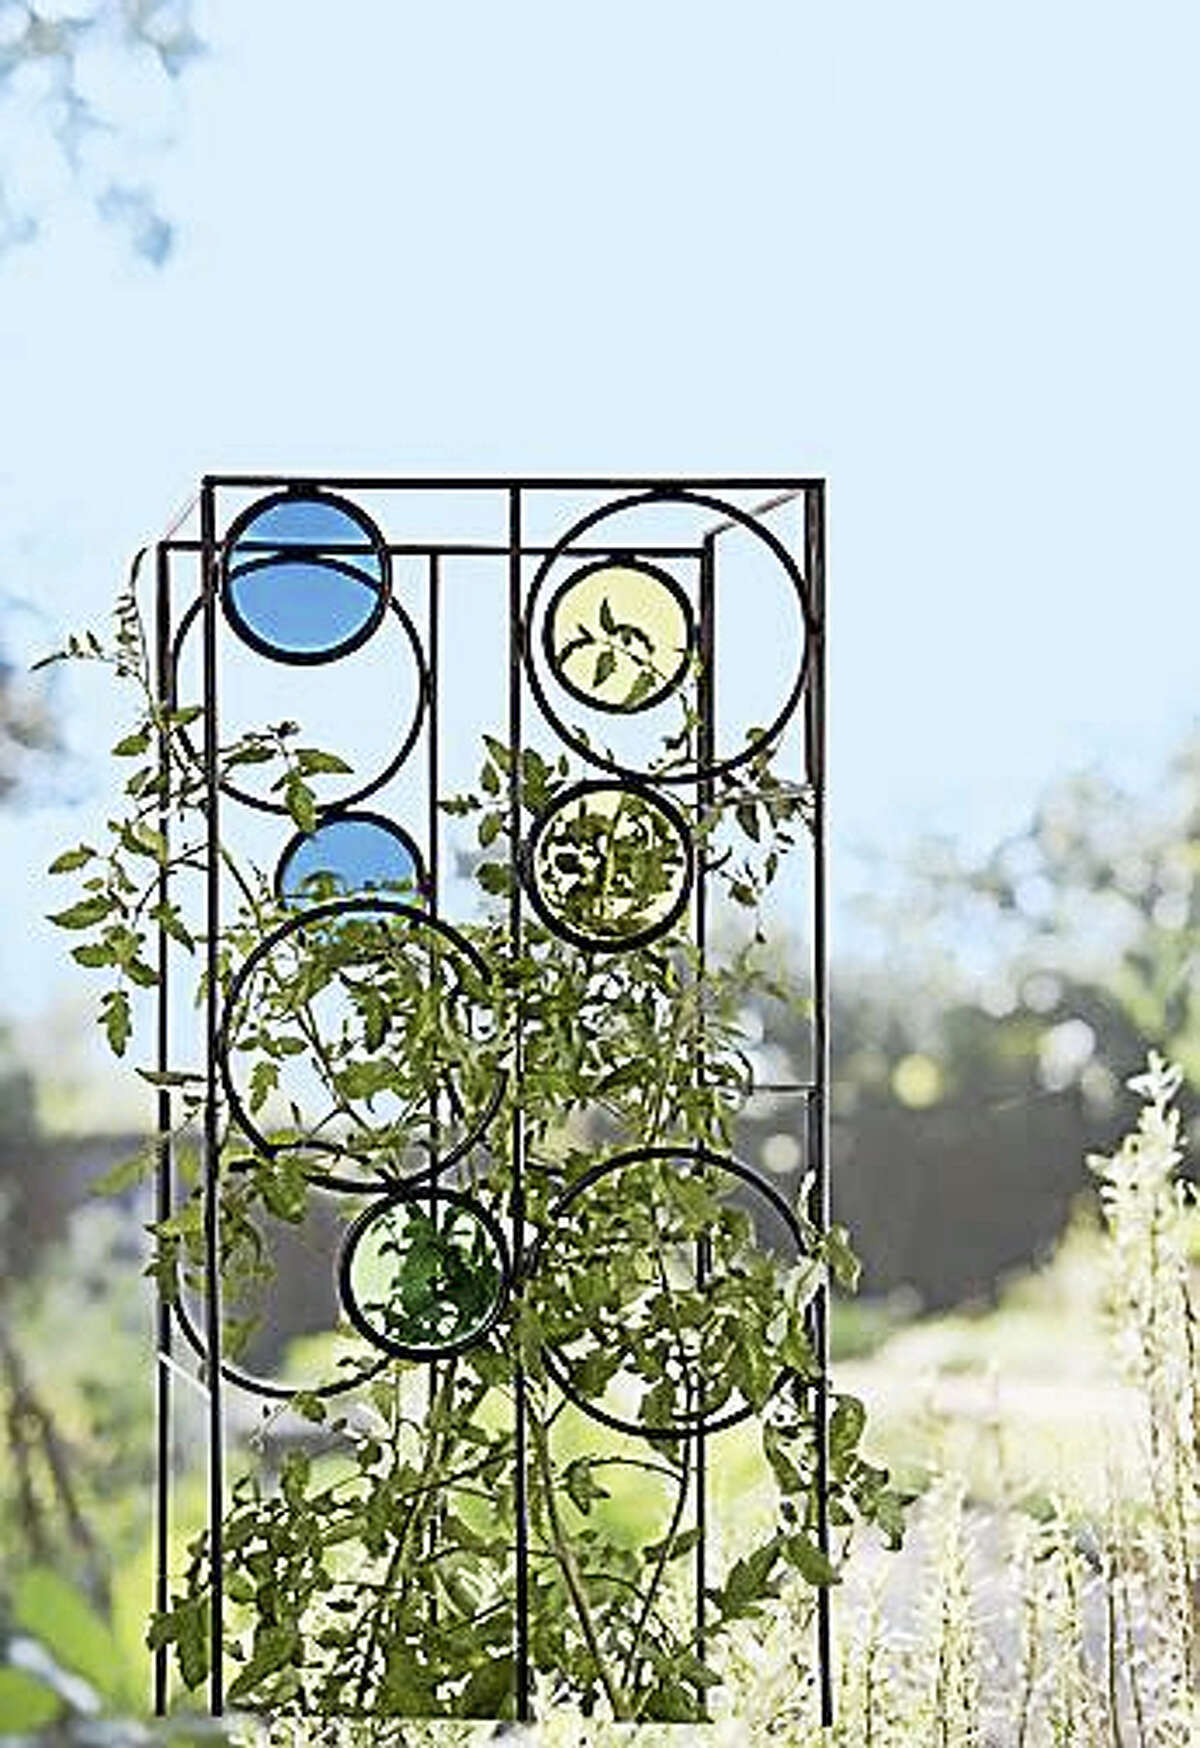 The Kaleidoscope Tomato Cage.